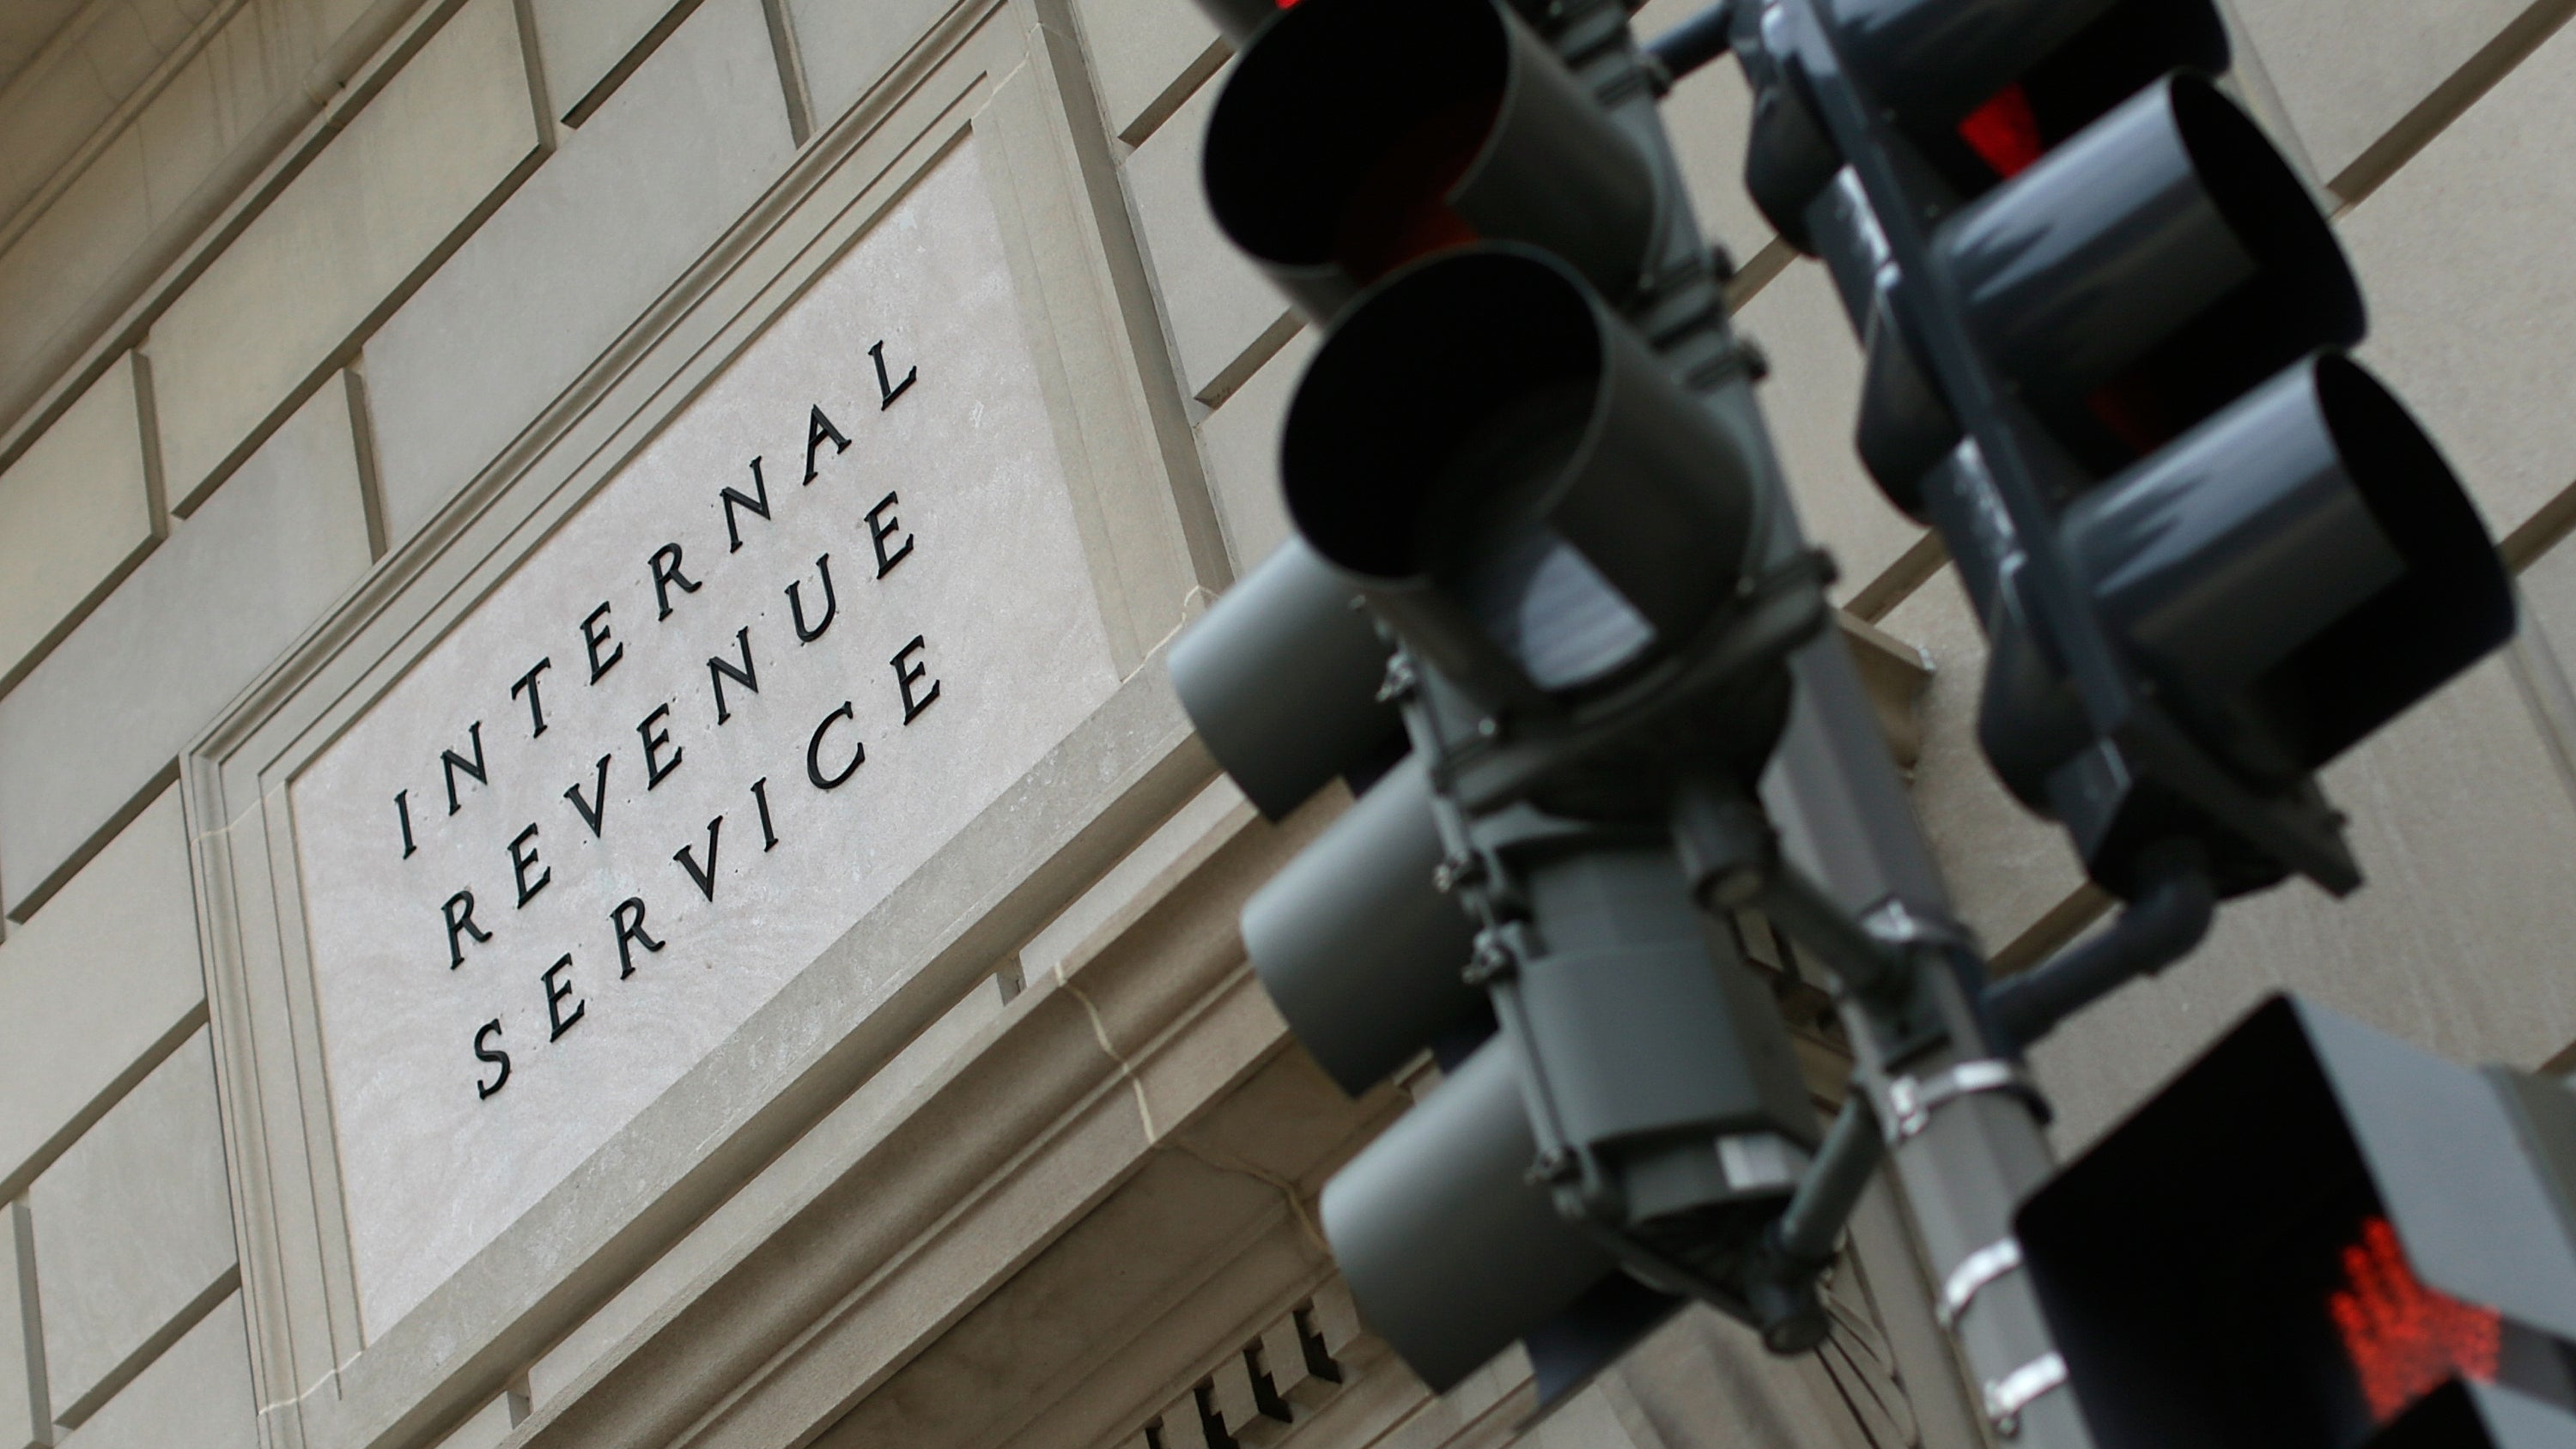 That Massive IRS Hack Was Way More Massive Than We Thought